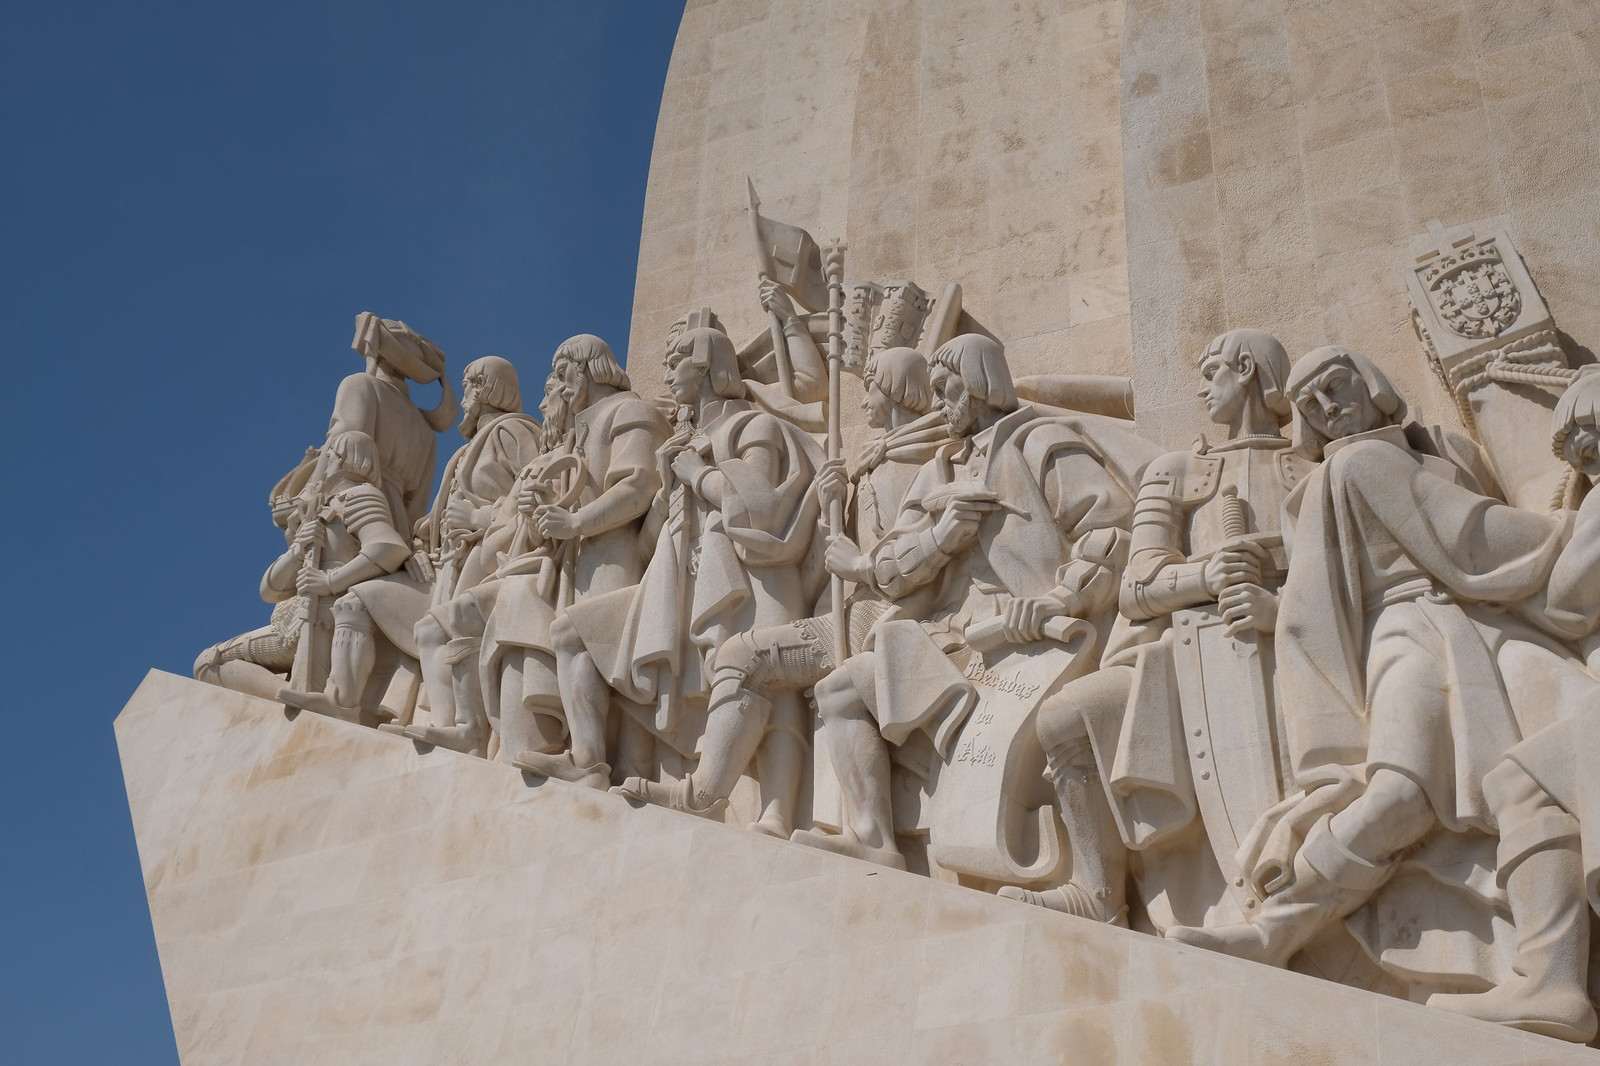 Monument to the Discoveries   One Day in Lisbon